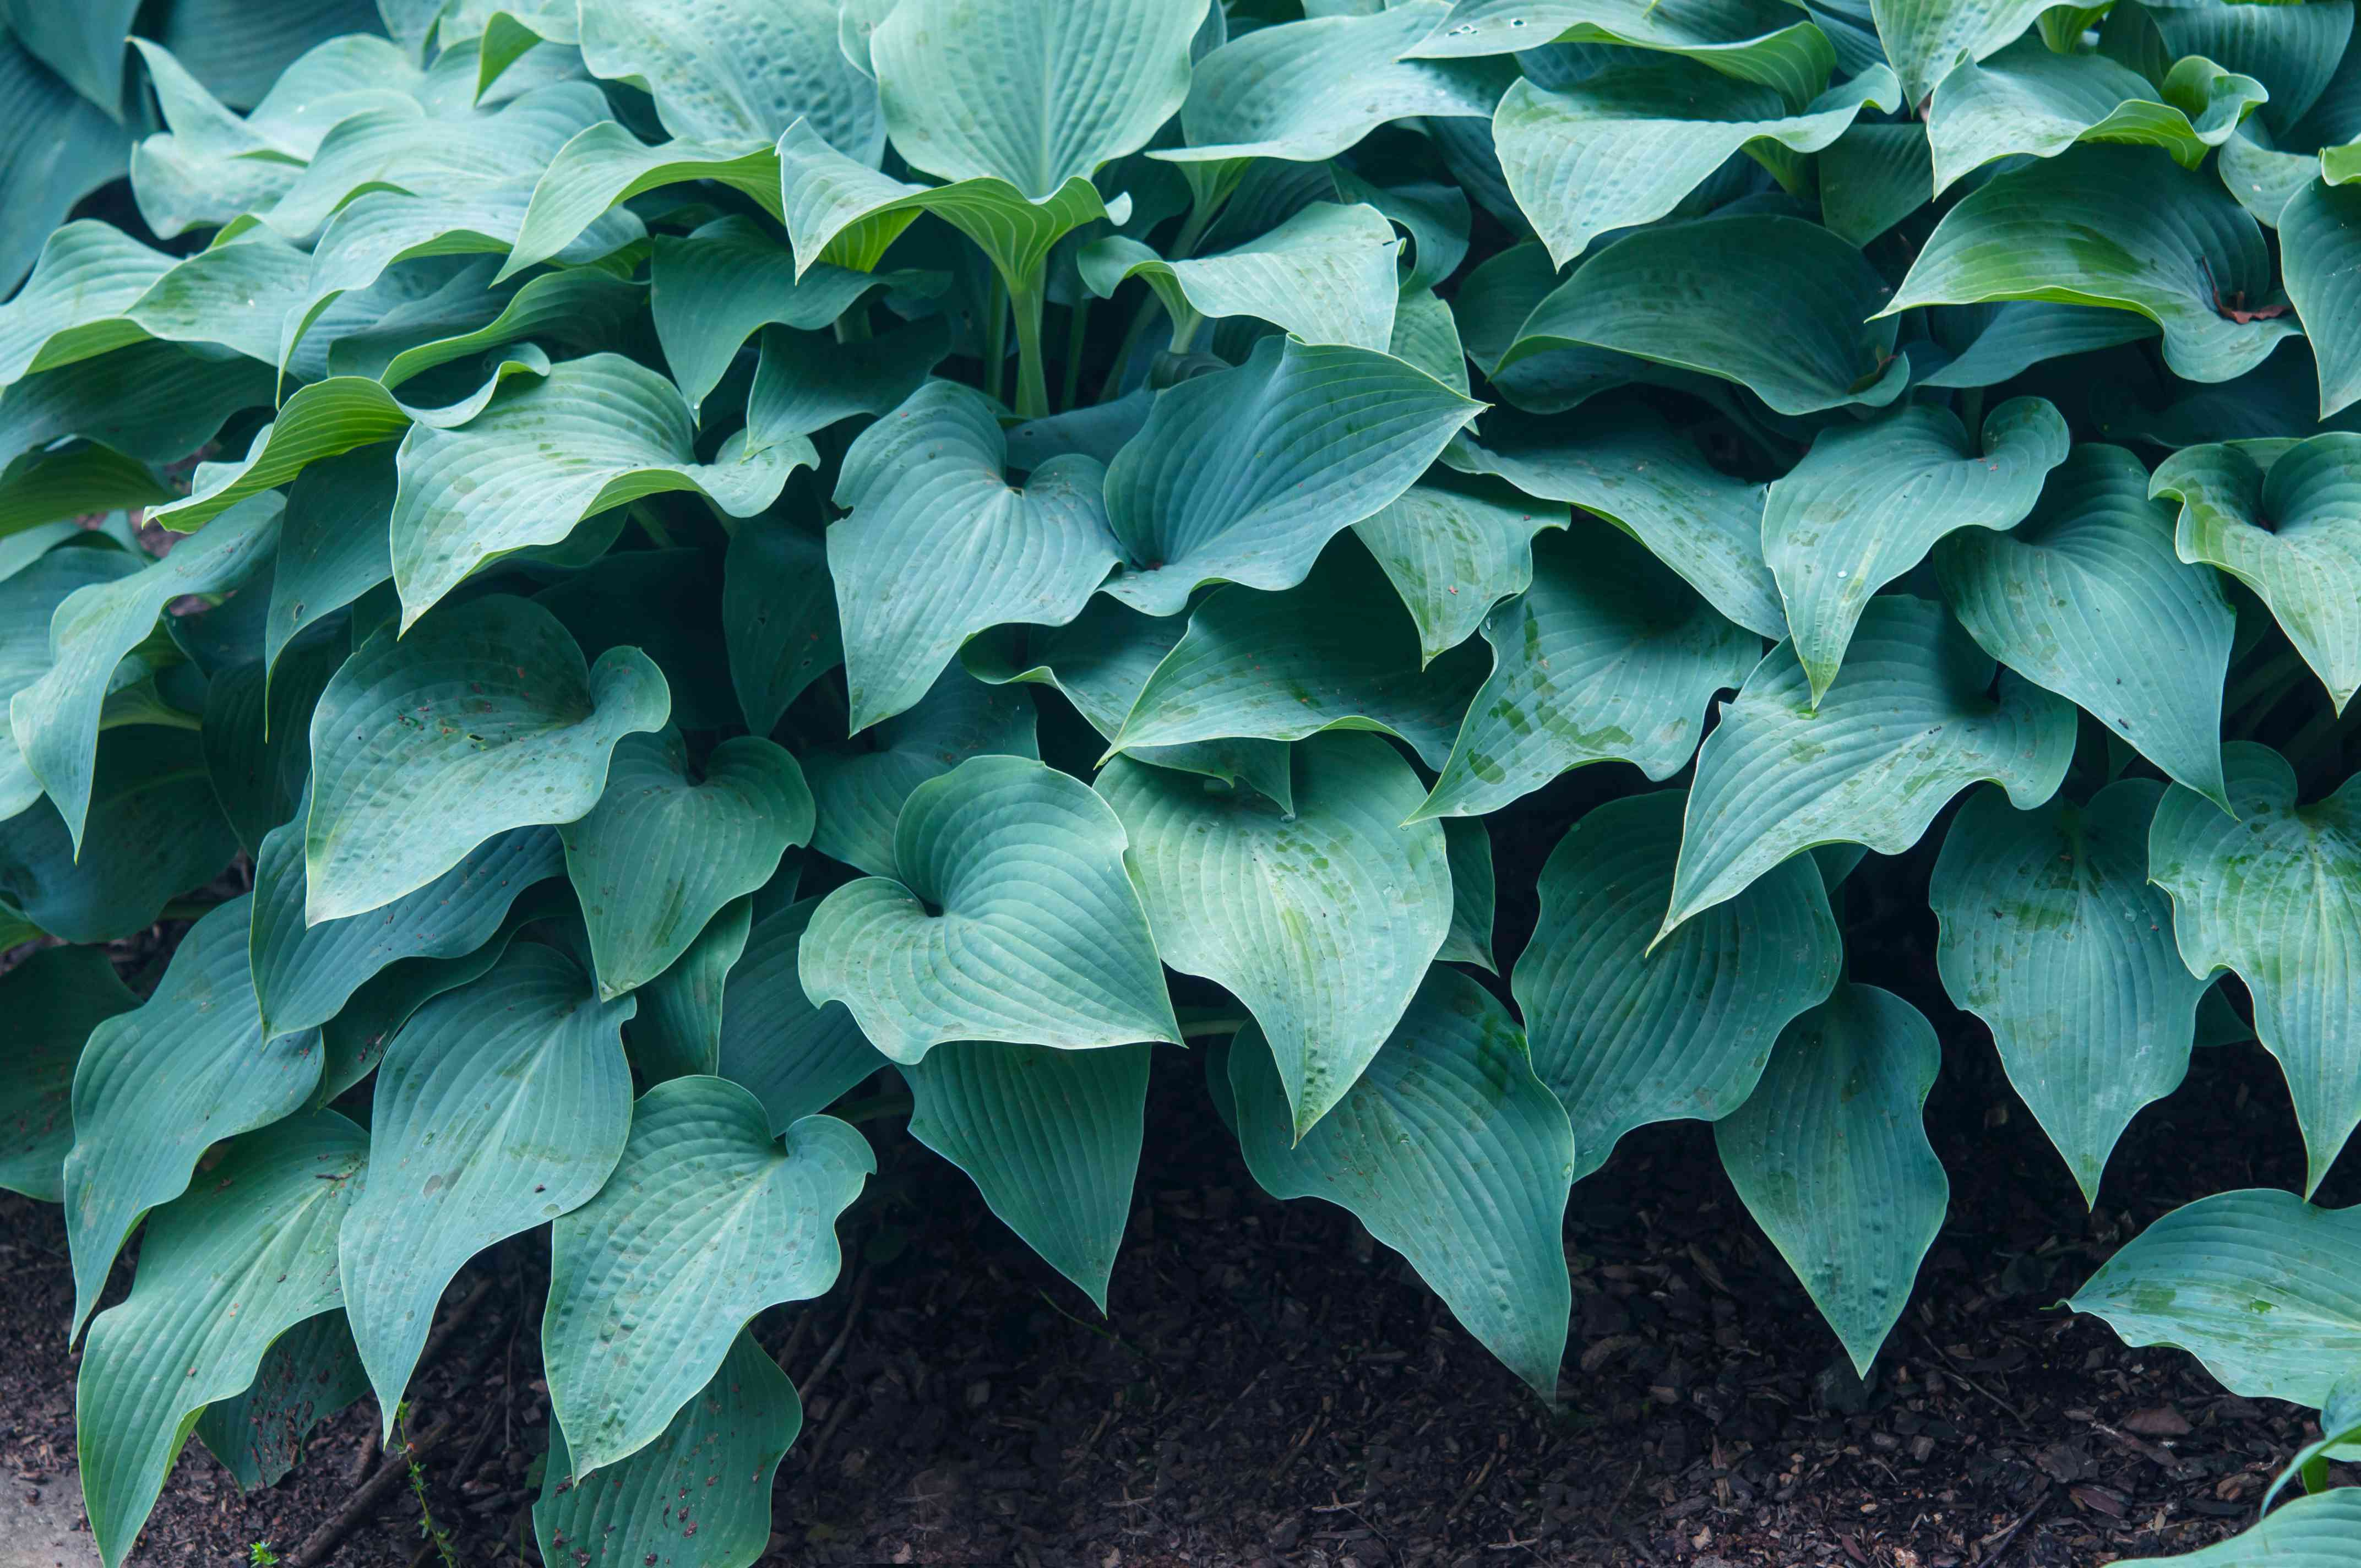 Halcyon hosta plant with blue-green leaves closeup